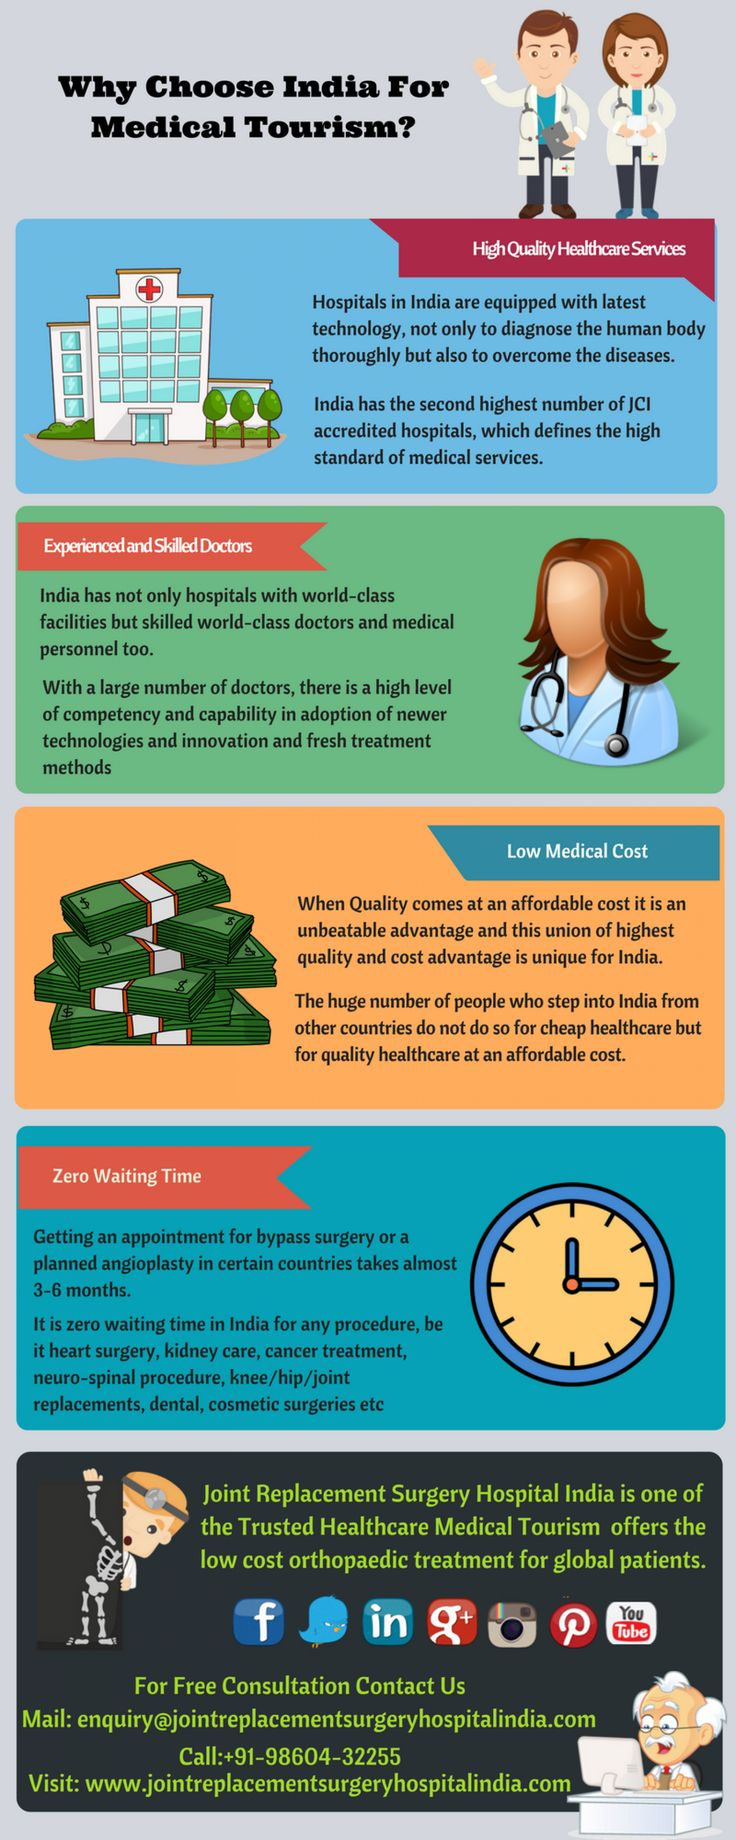 Why Choose India For Medical Tourism?